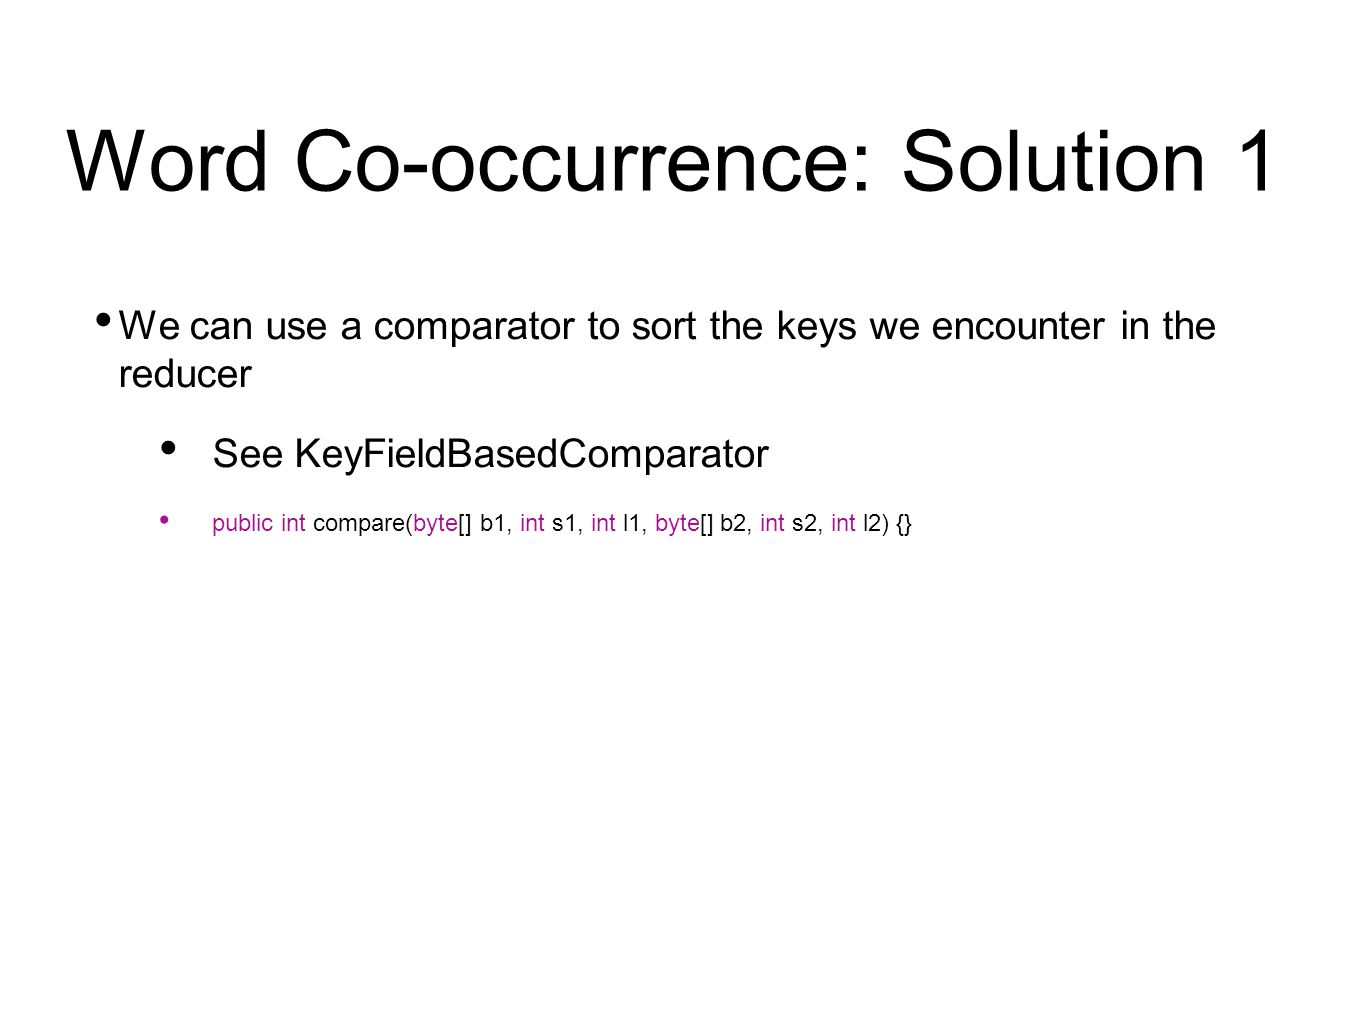 Word Co-occurrence: Solution 1 We can use a comparator to sort the keys we encounter in the reducer See KeyFieldBasedComparator public int compare(byte[] b1, int s1, int l1, byte[] b2, int s2, int l2) {}